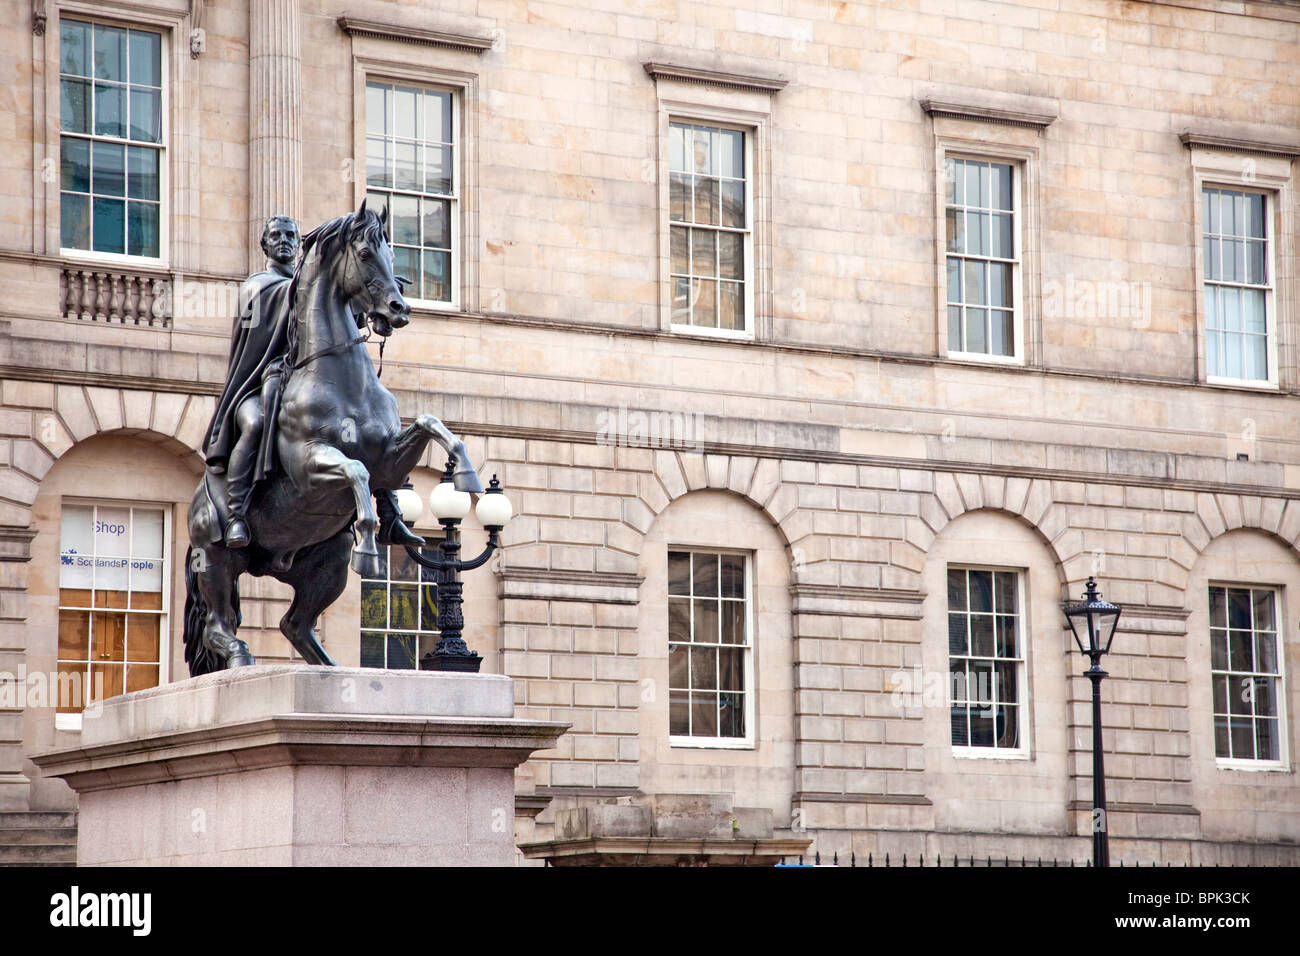 'The Iron Duke in Bronze by Steele'  an equestrian statue of the Duke of Wellington, by Sir John Steell - Stock Image